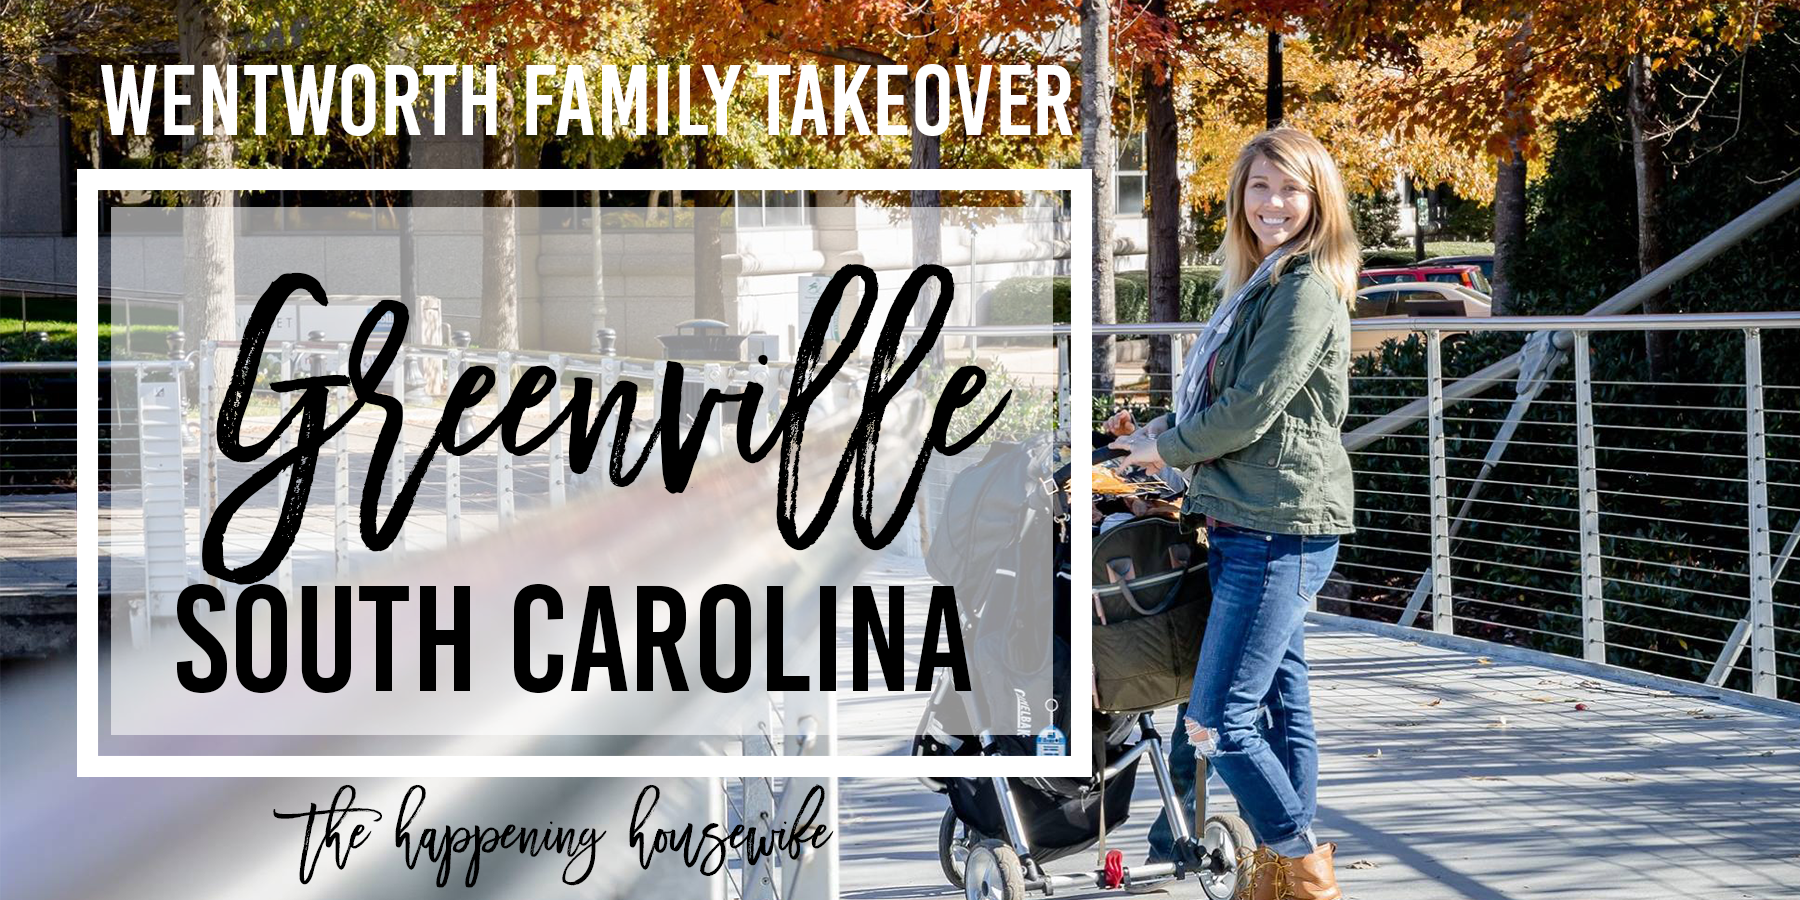 WENTWORTH FAMILY TAKEOVER | Greenville, SC